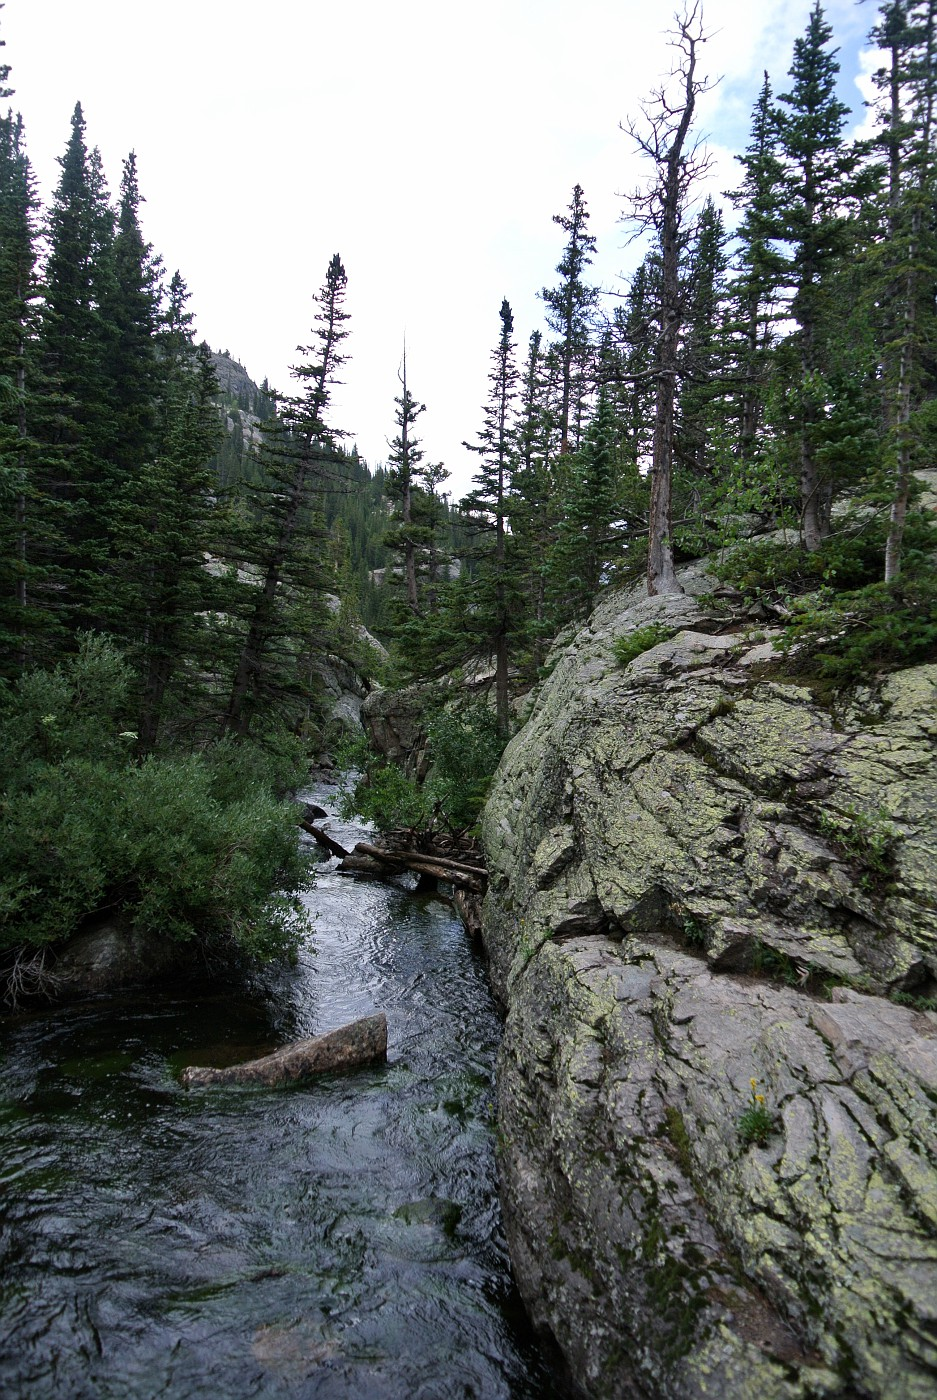 View of Glacier Creek from the bridge